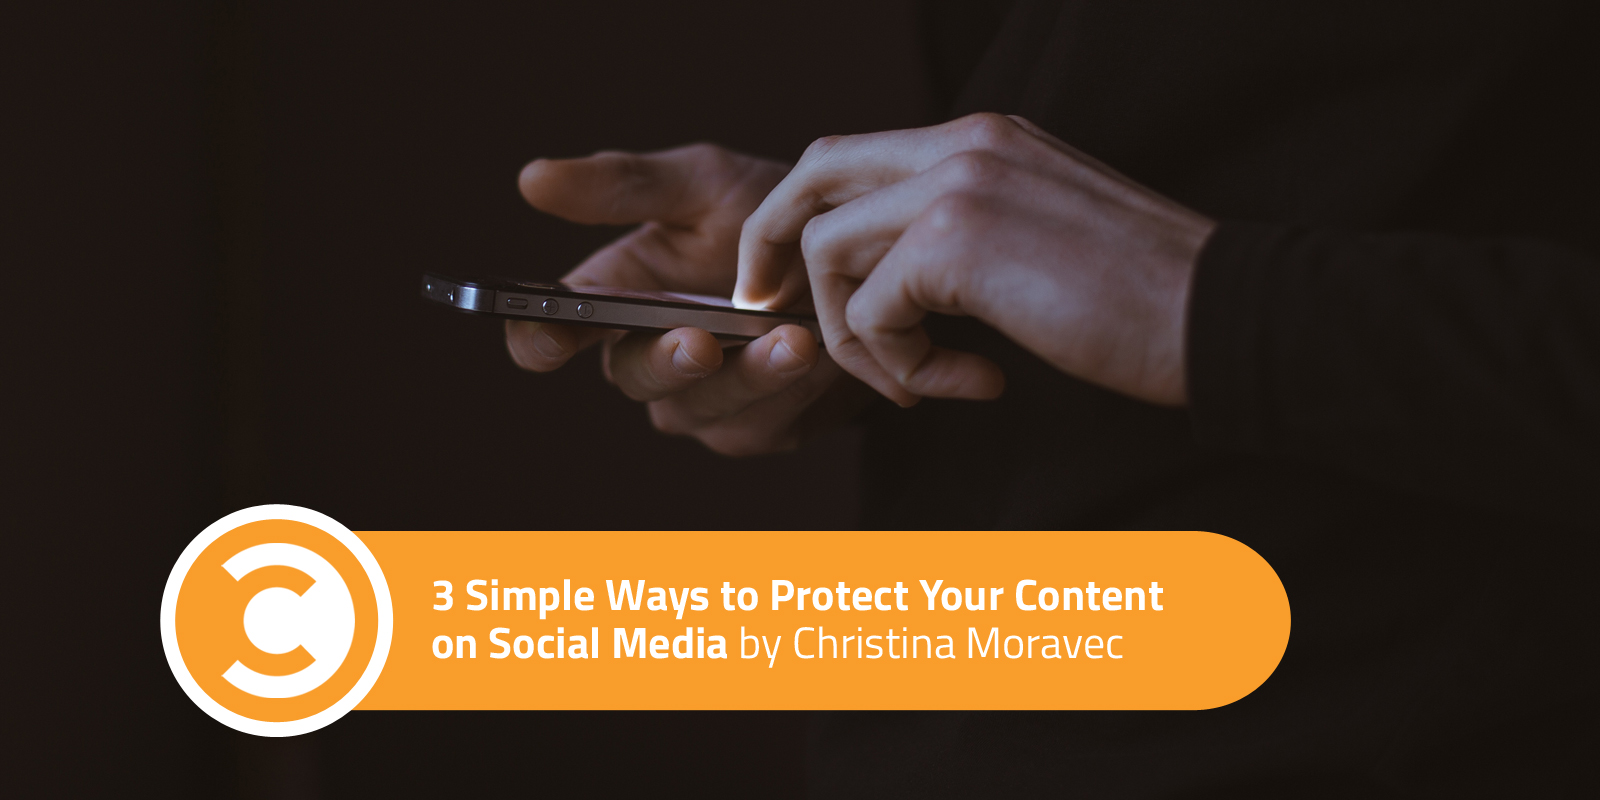 3 Simple Ways to Protect Your Content on Social Media